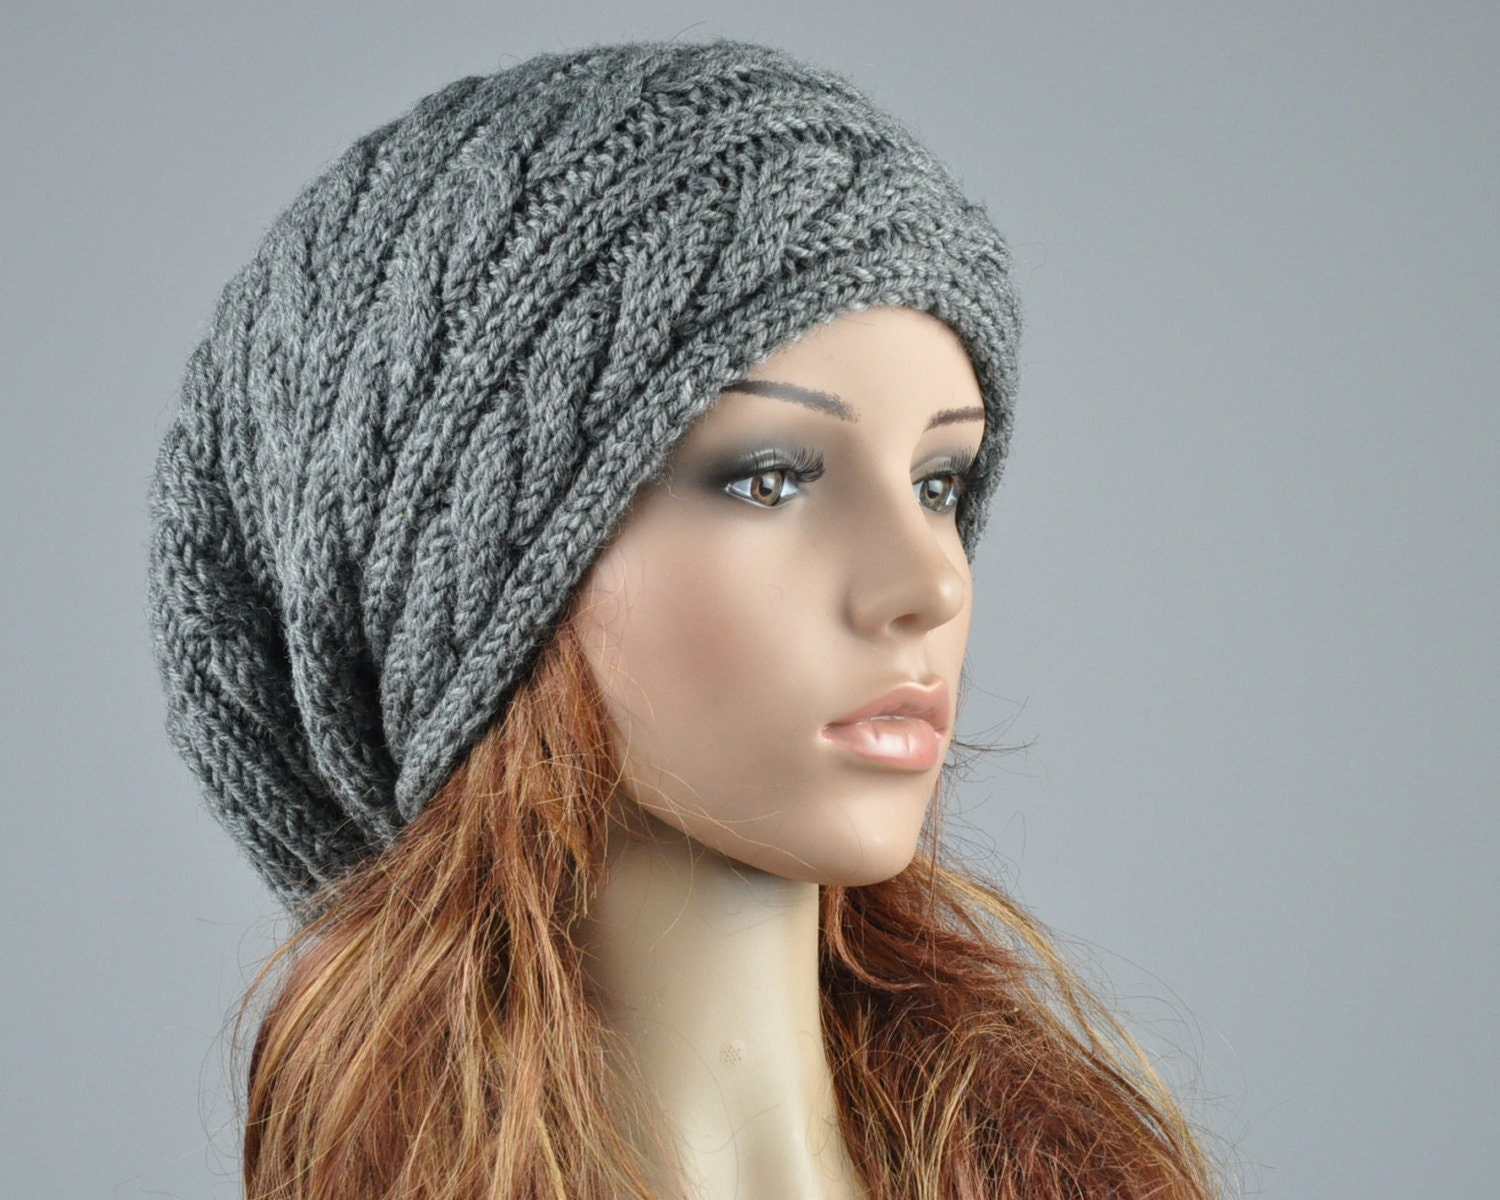 Hand Knitted Hat Patterns : Hand knit hat Charcoal hat slouchy hat cable pattern by MaxMelody